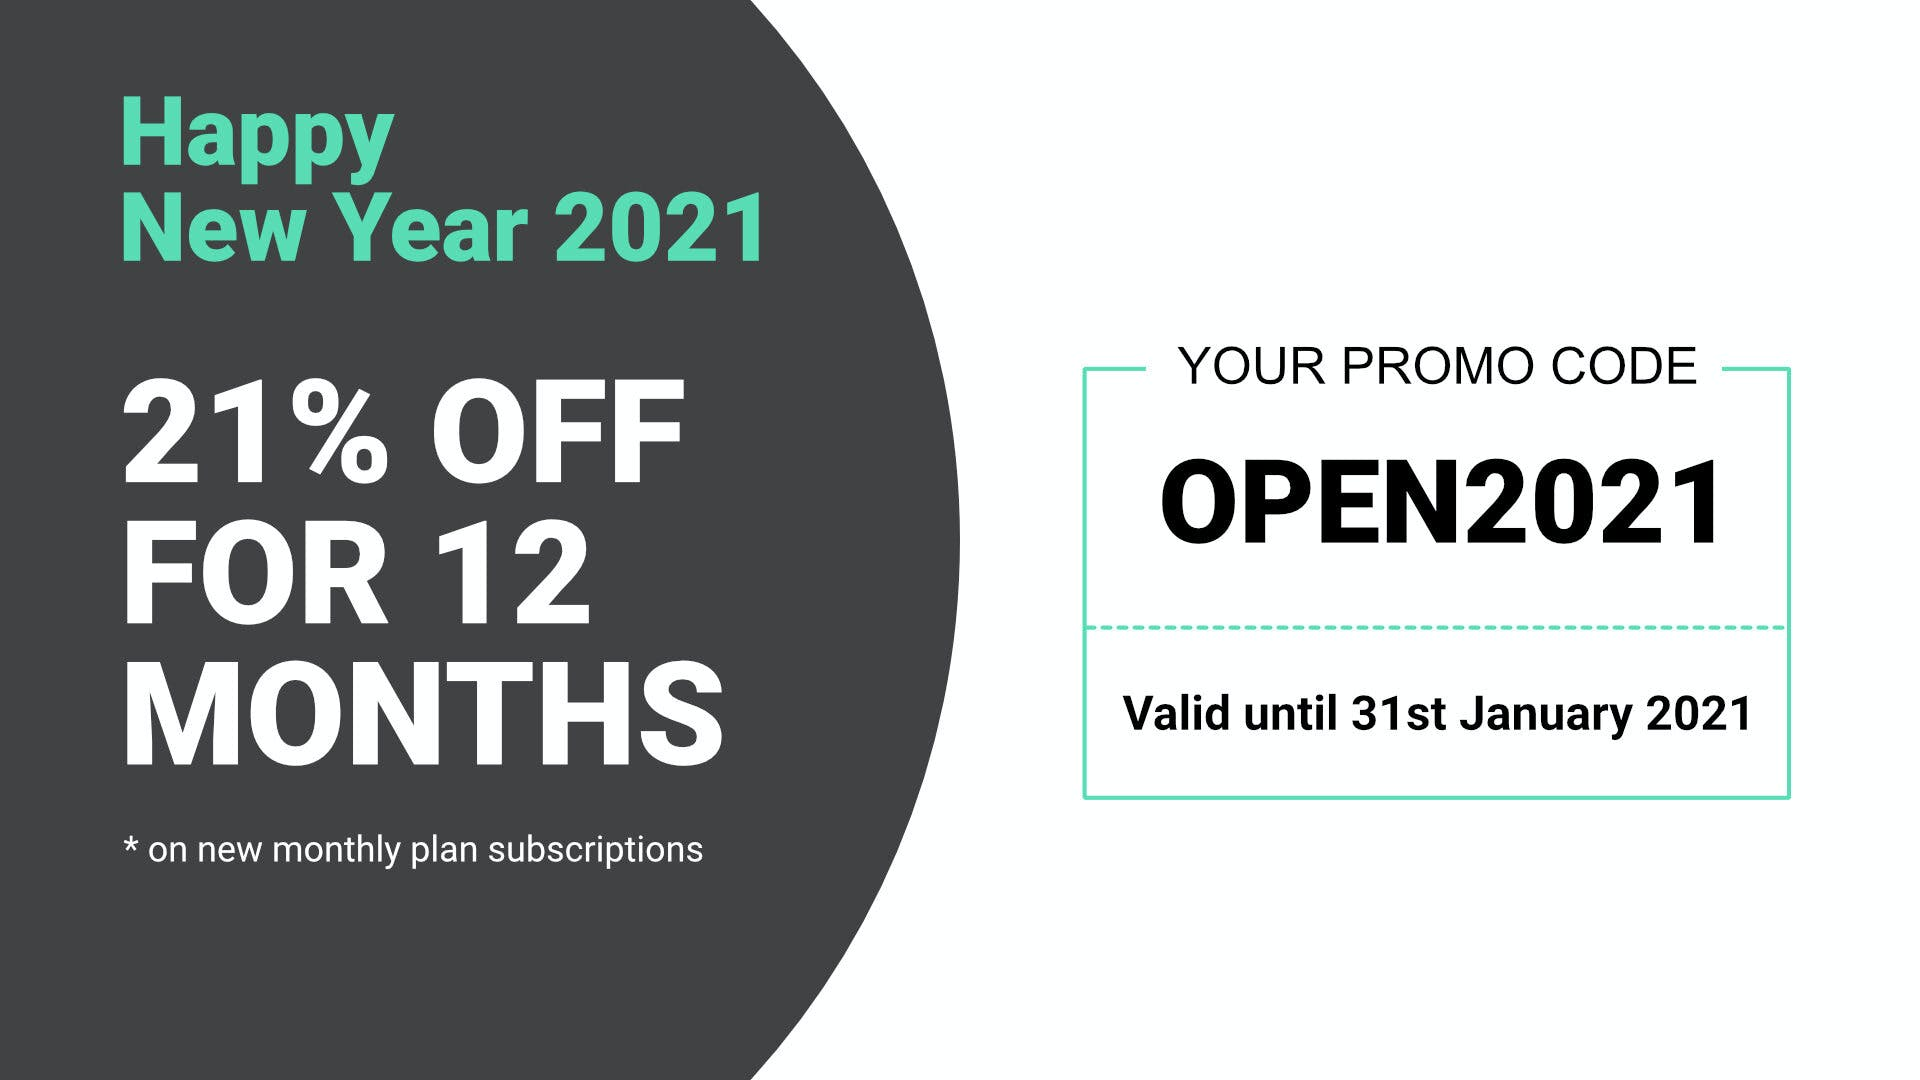 Happy New Year 2021 - 21% off for 12 months